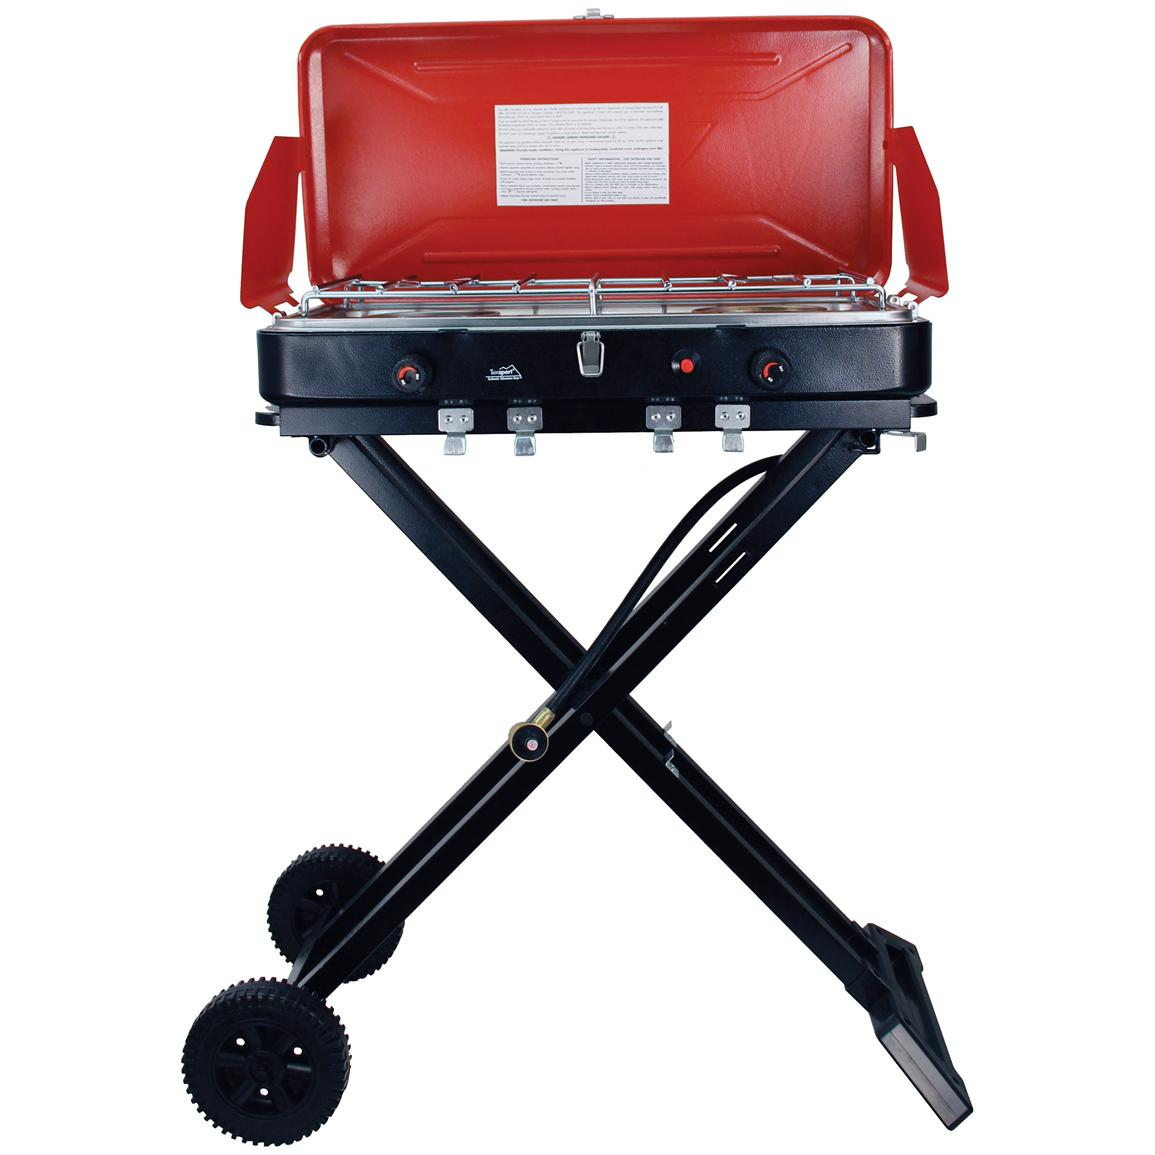 Texsport® Travel 'n' Trail High-output Dual Burner Insta-Light Propane Stove / Grill